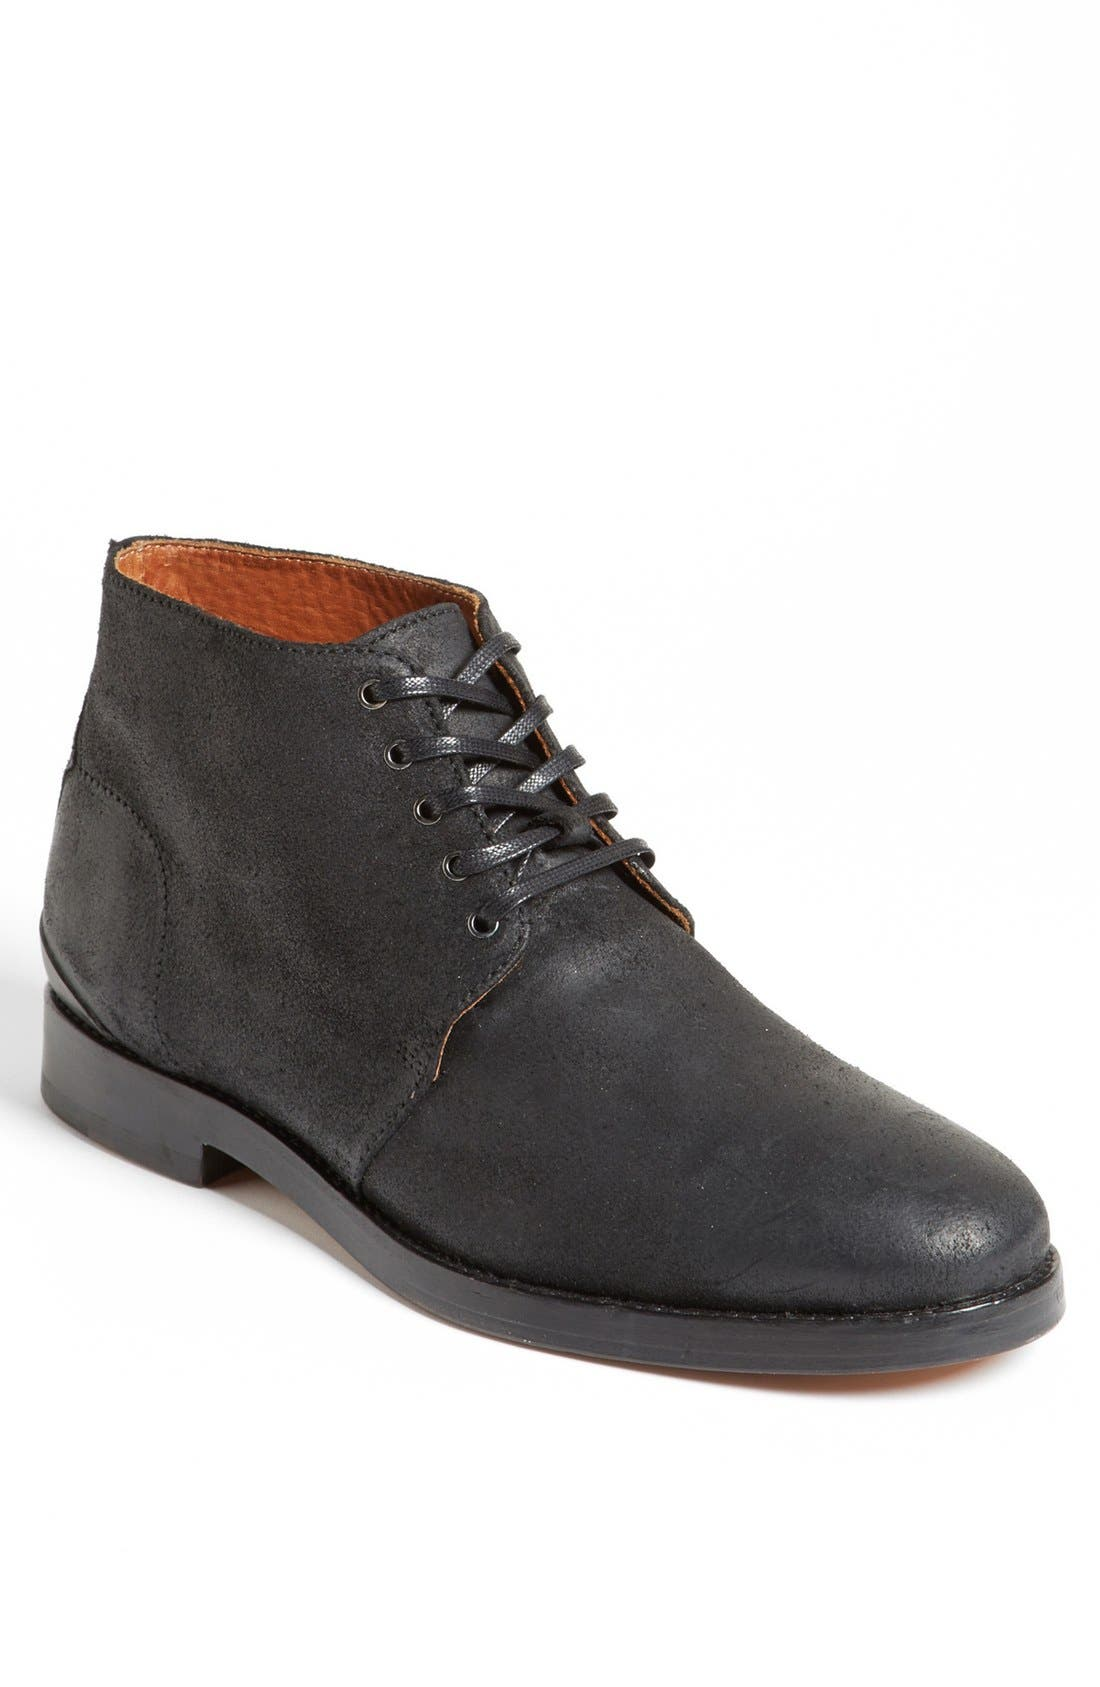 Alternate Image 1 Selected - rag & bone 'Archer' Plain Toe Suede Boot